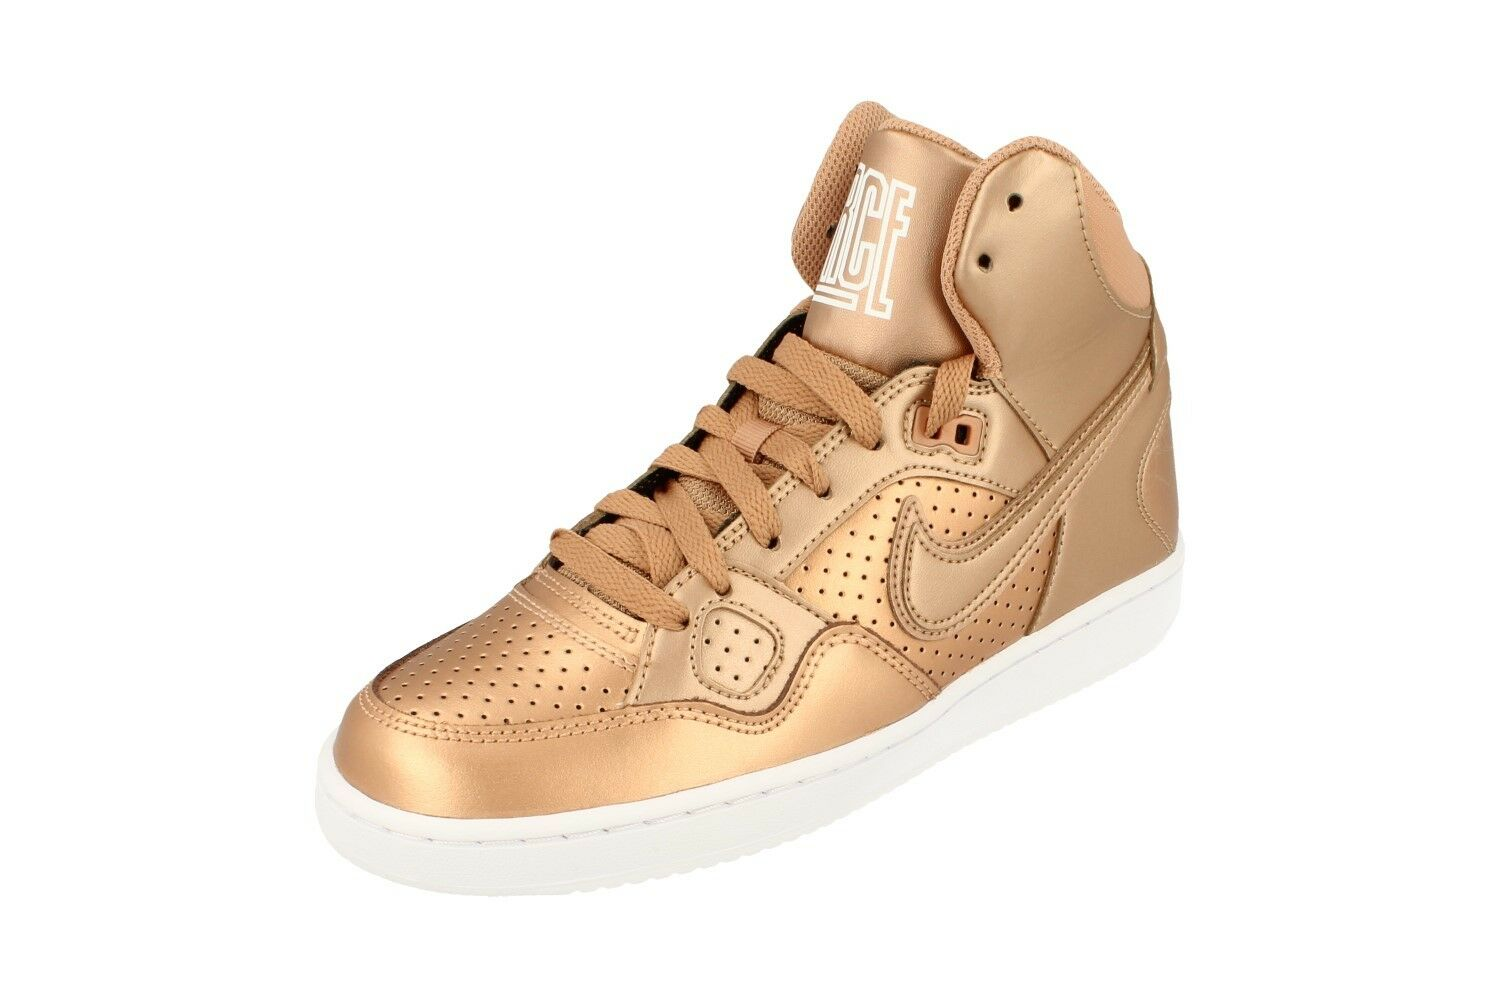 Nike Womens Son Of Force Shoes Mid Trainers 616303 Sneakers Shoes Force 991 b116d4